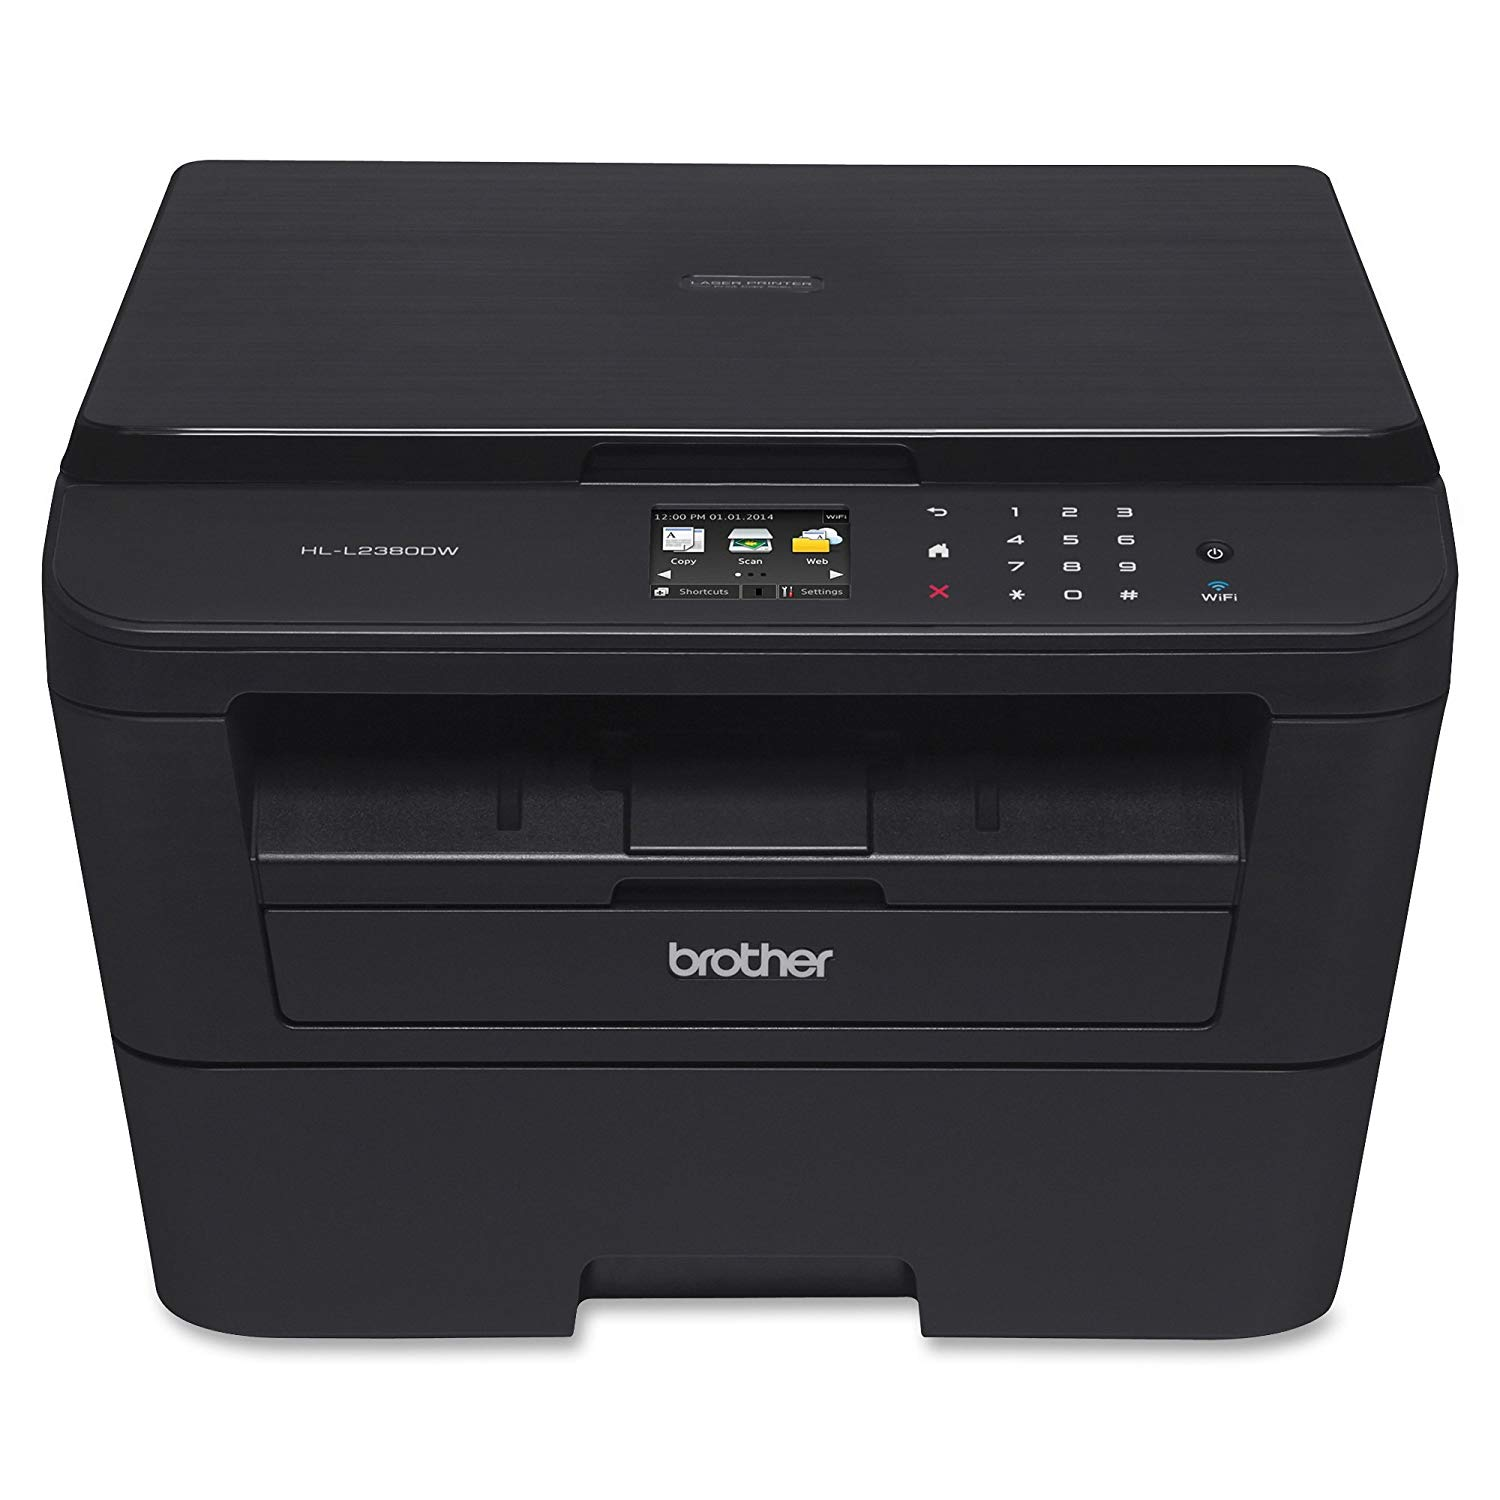 Brother Hl 22700w Driver Download: Brother HL-L2380DW Driver Downloads